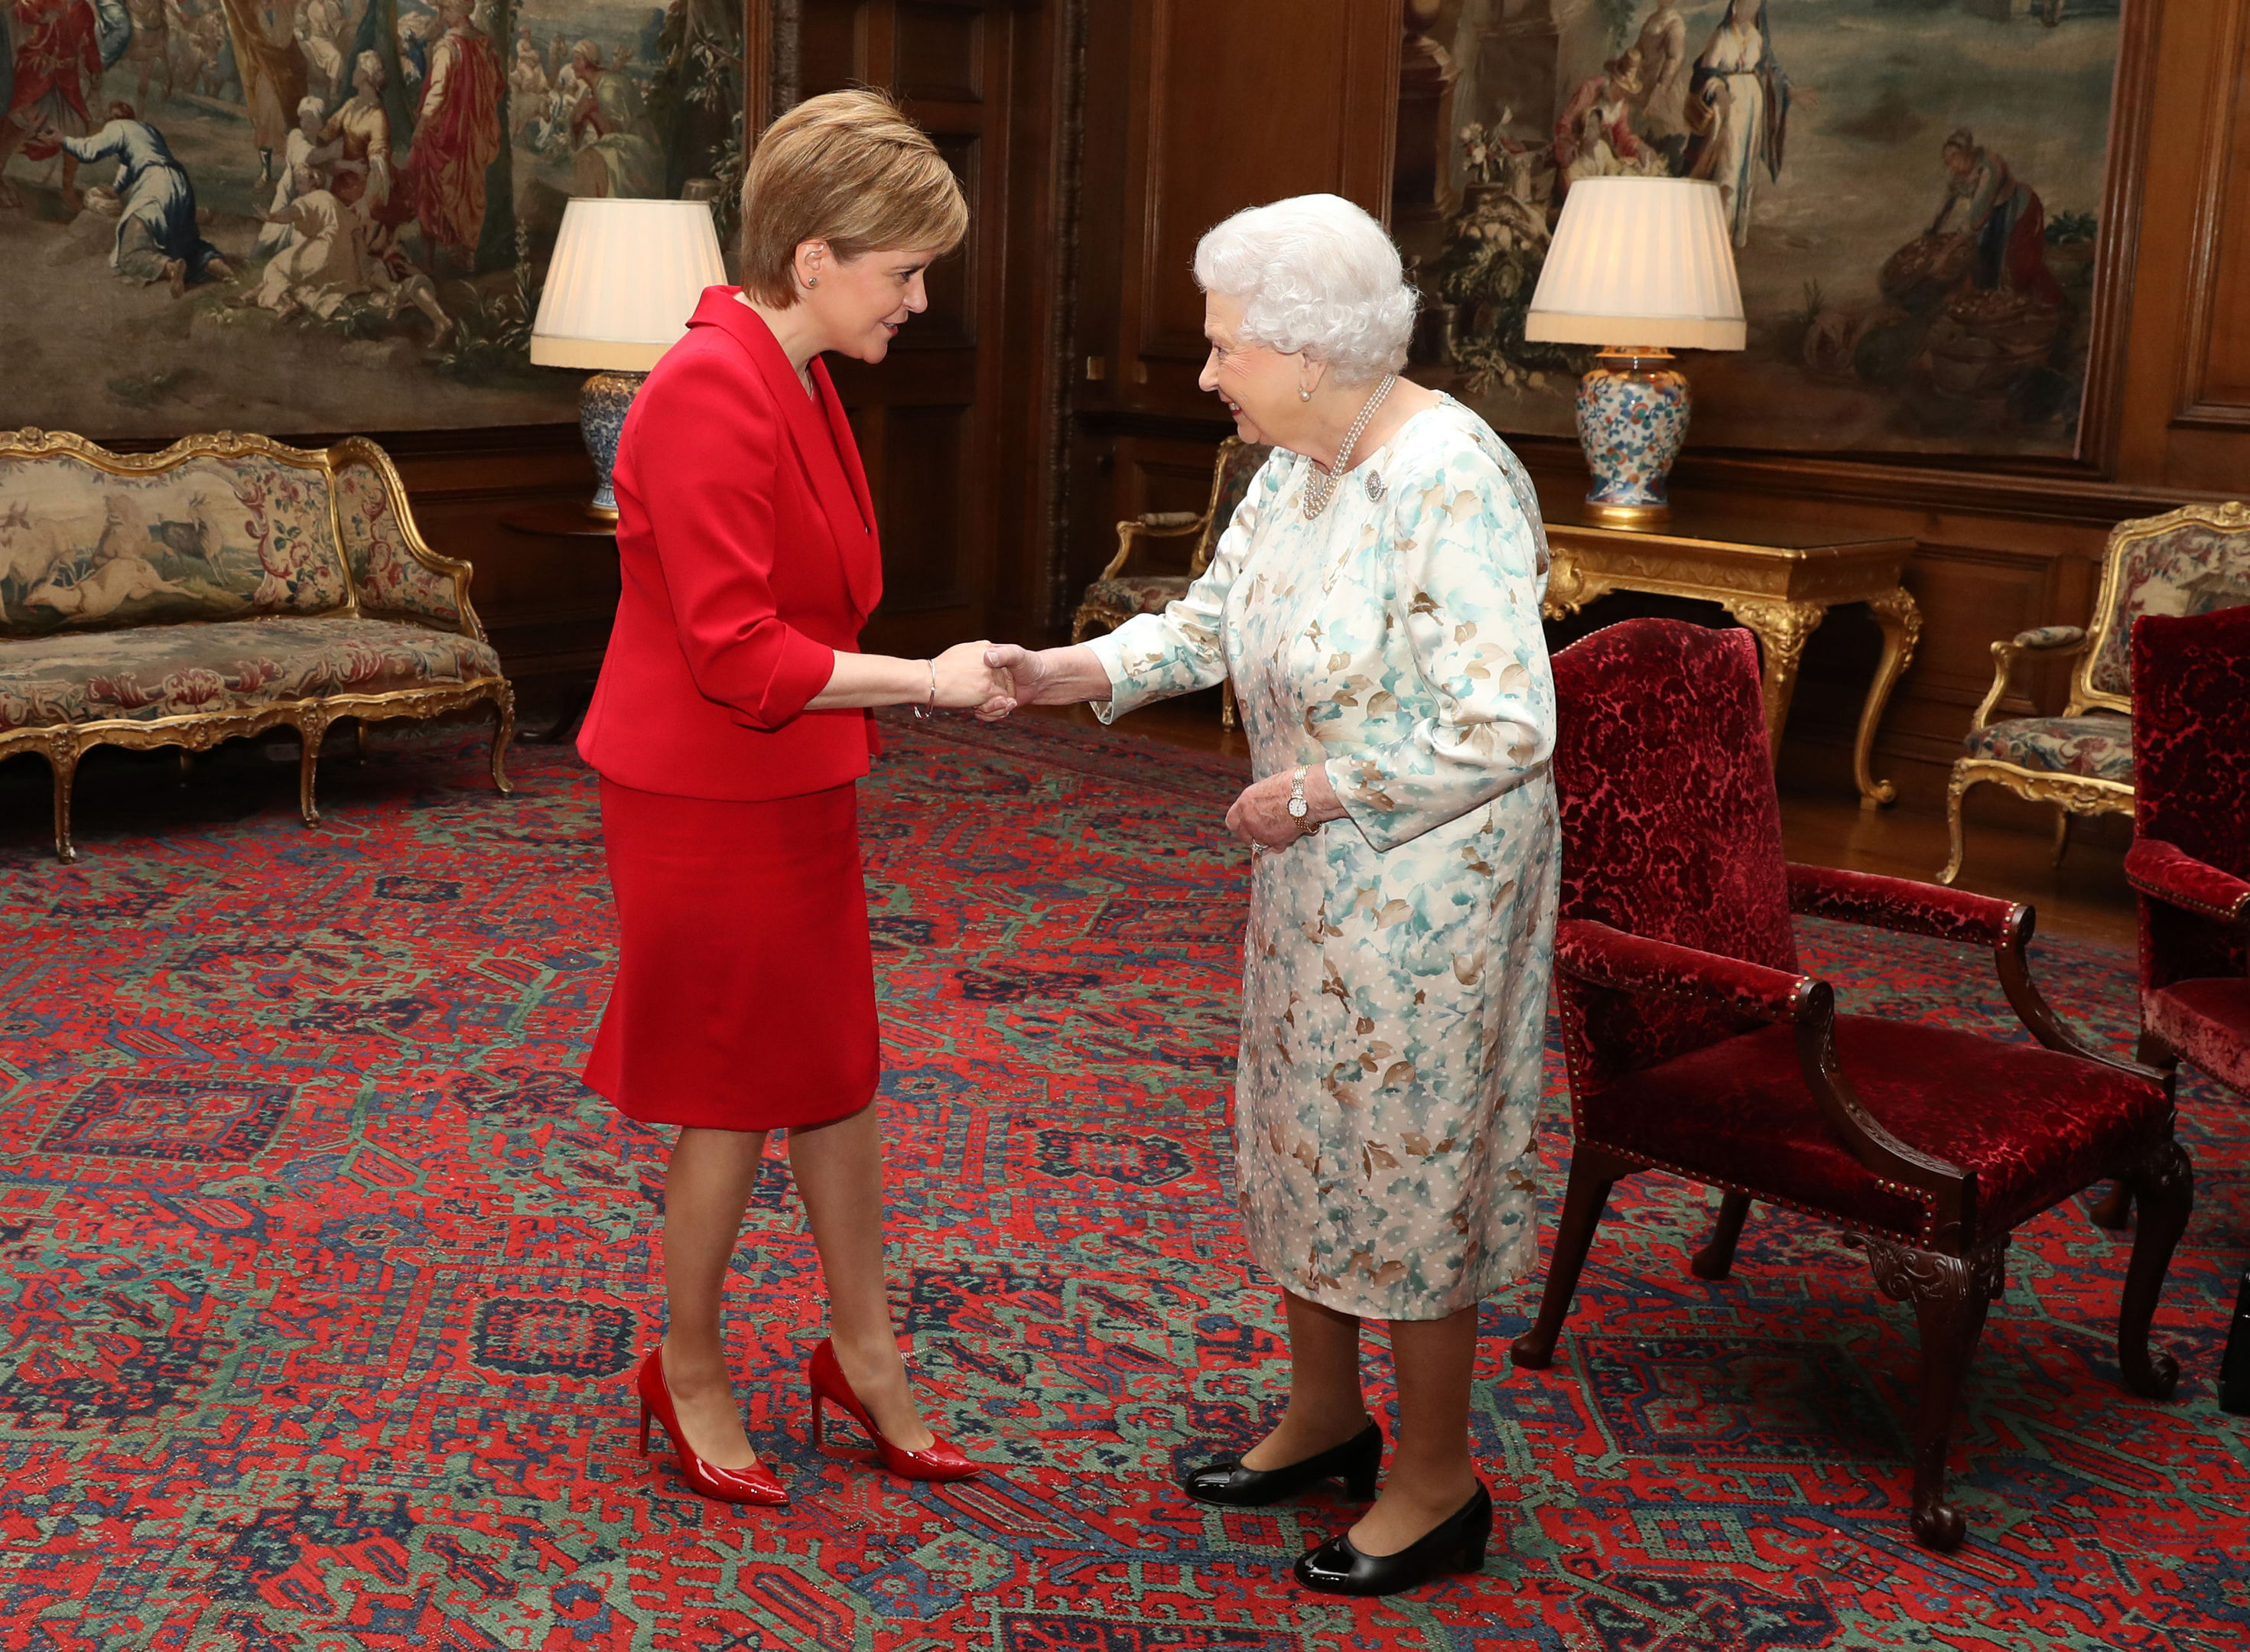 Queen Elizabeth II (right) greets Scotland's First Minister Nicola Sturgeon at an audience at the Palace of Holyroodhouse in Edinburgh. (Andrew Milligan/PA Wire)